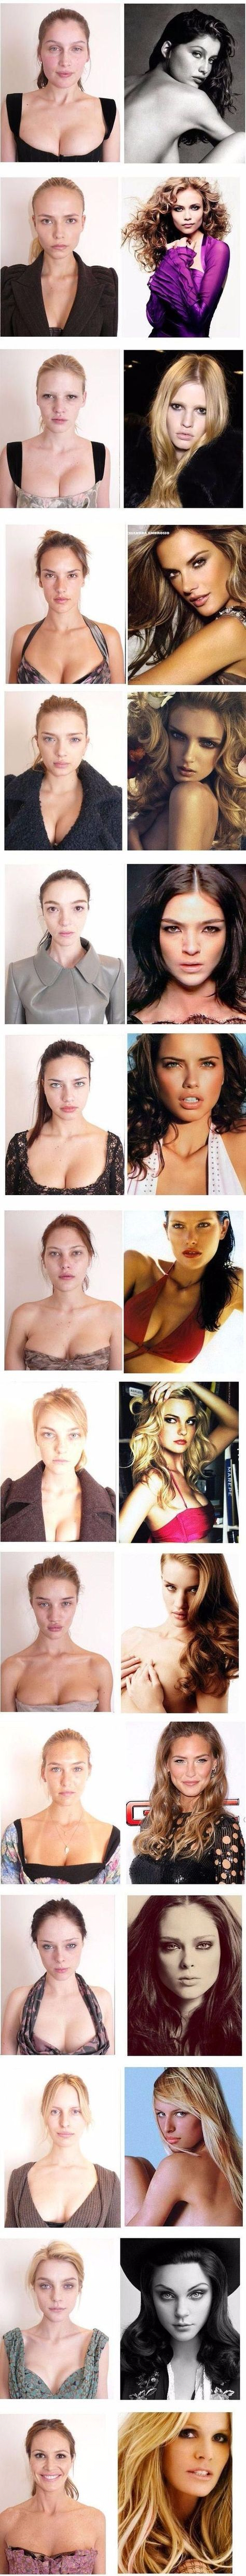 victoria's secret models,models before and after photoshop, models without makeup, models before and after makeup